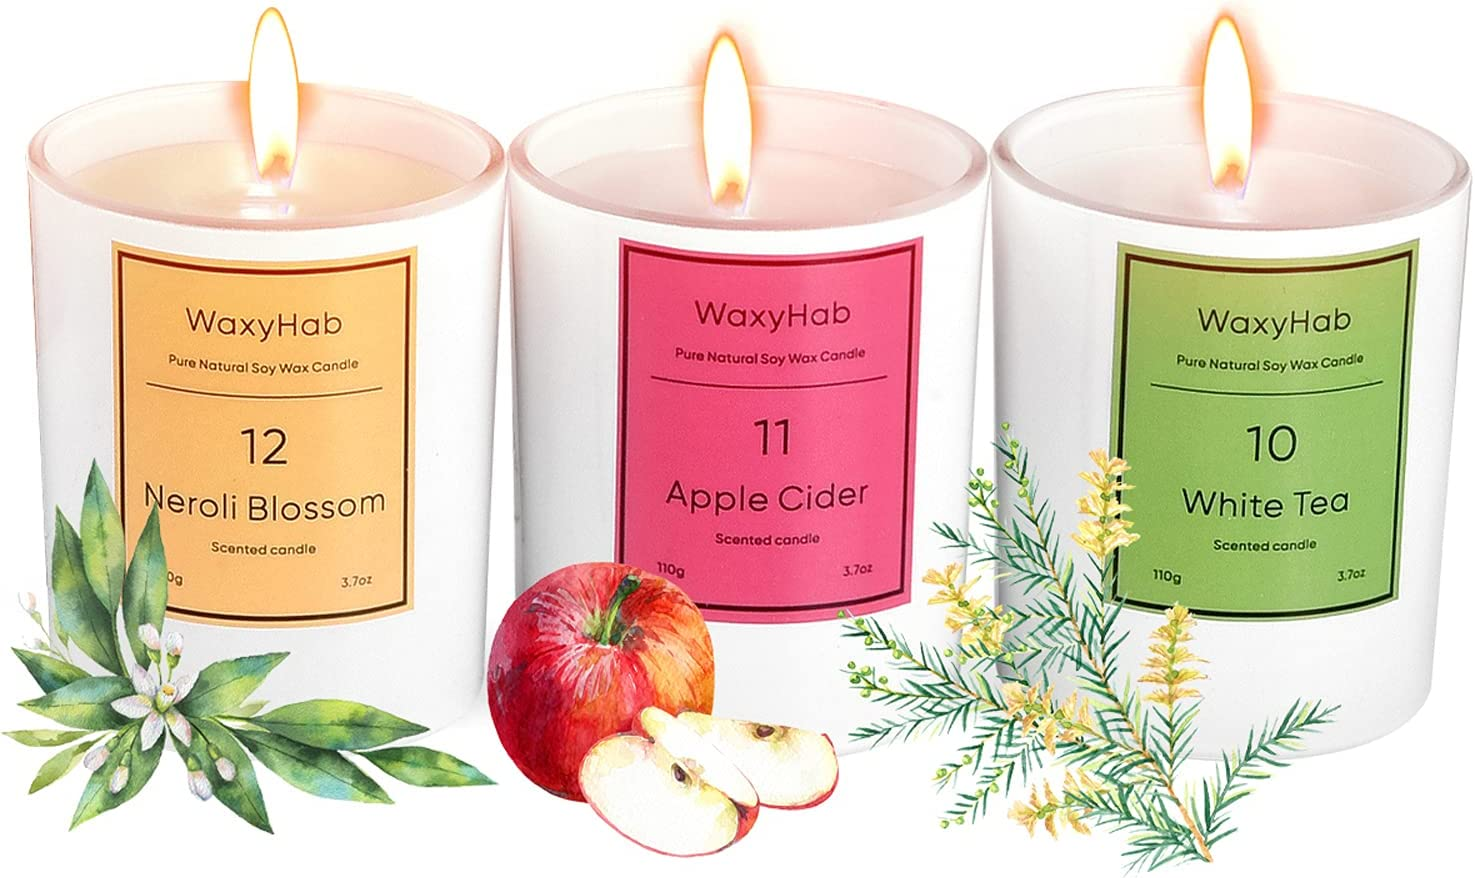 WaxyHab Jar Candle 3pcs, Aromatherapy Candle,Soy Candle,Apple Cider + White Tea + Neroli Blossom All Natural Scented Candles 3.7 oz ×3 | 18 Hour Burn, Long Lasting ,Highly Scented